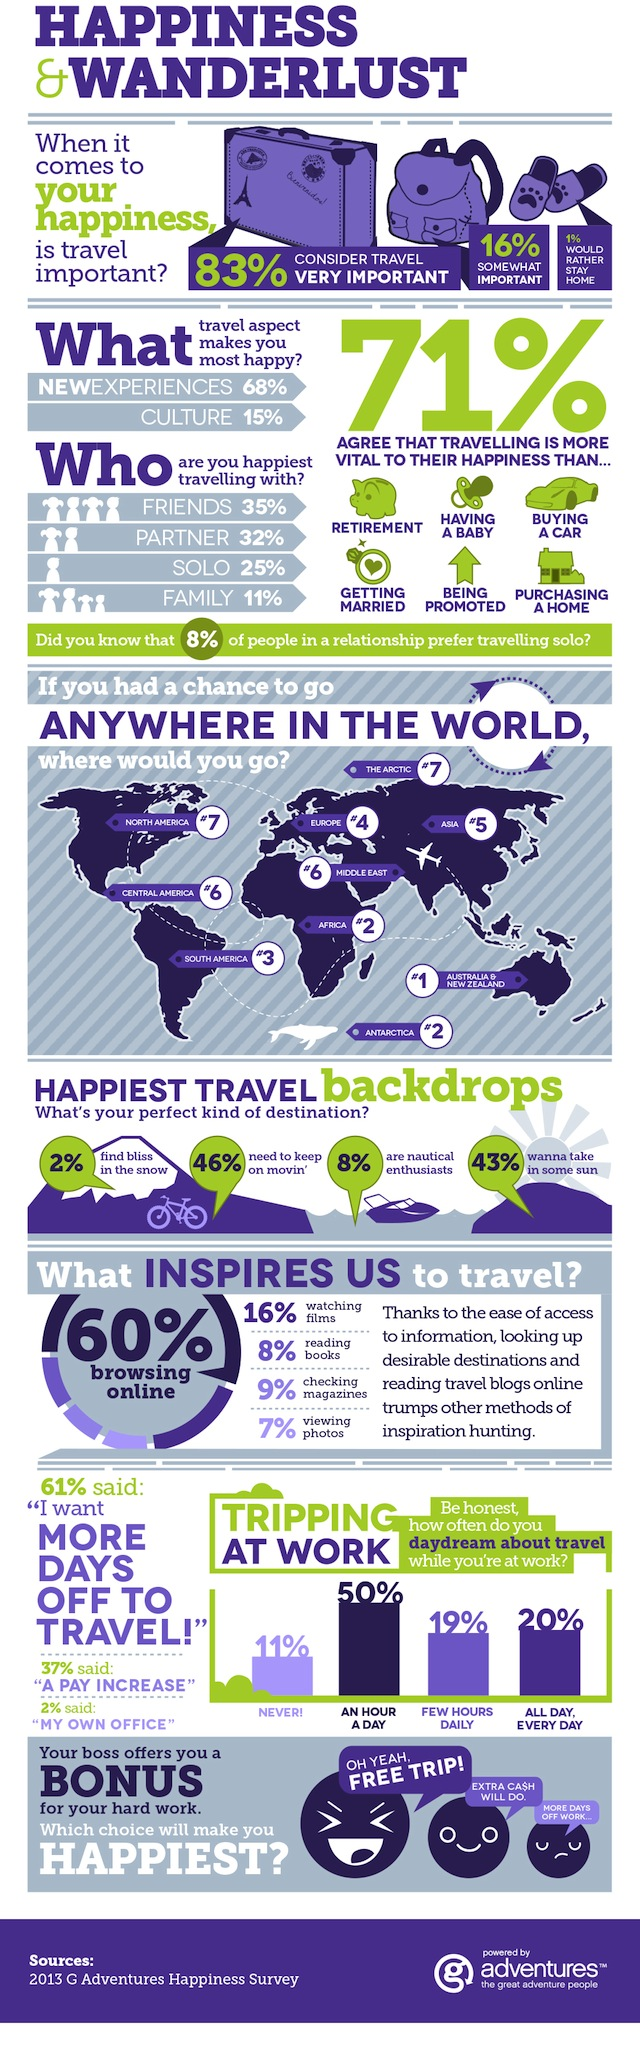 nternational Day of Happiness Infographic